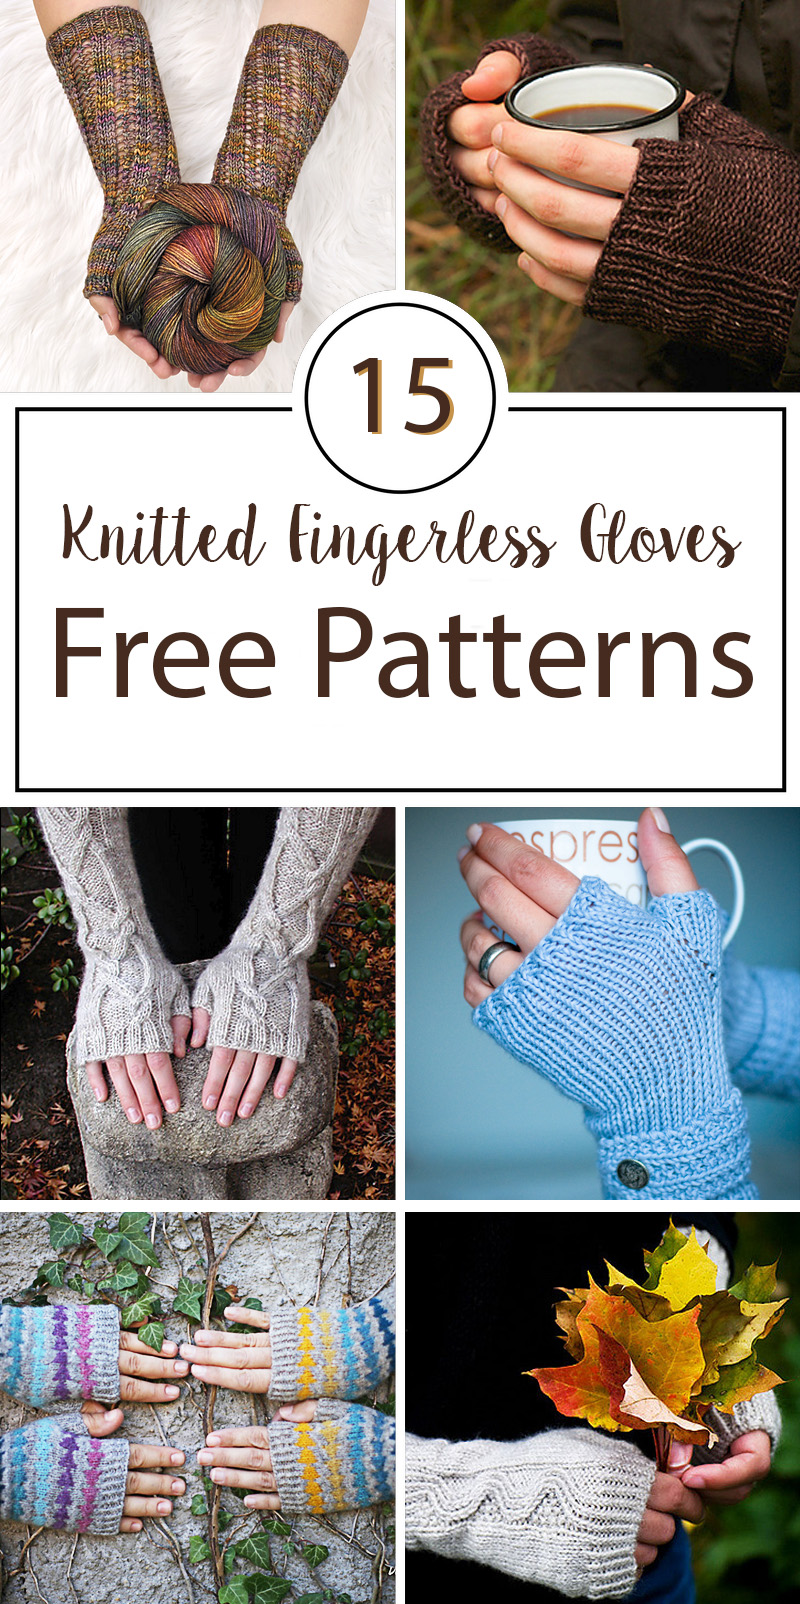 Knitted Fingerless Gloves Free Patterns Crafty Tutorials